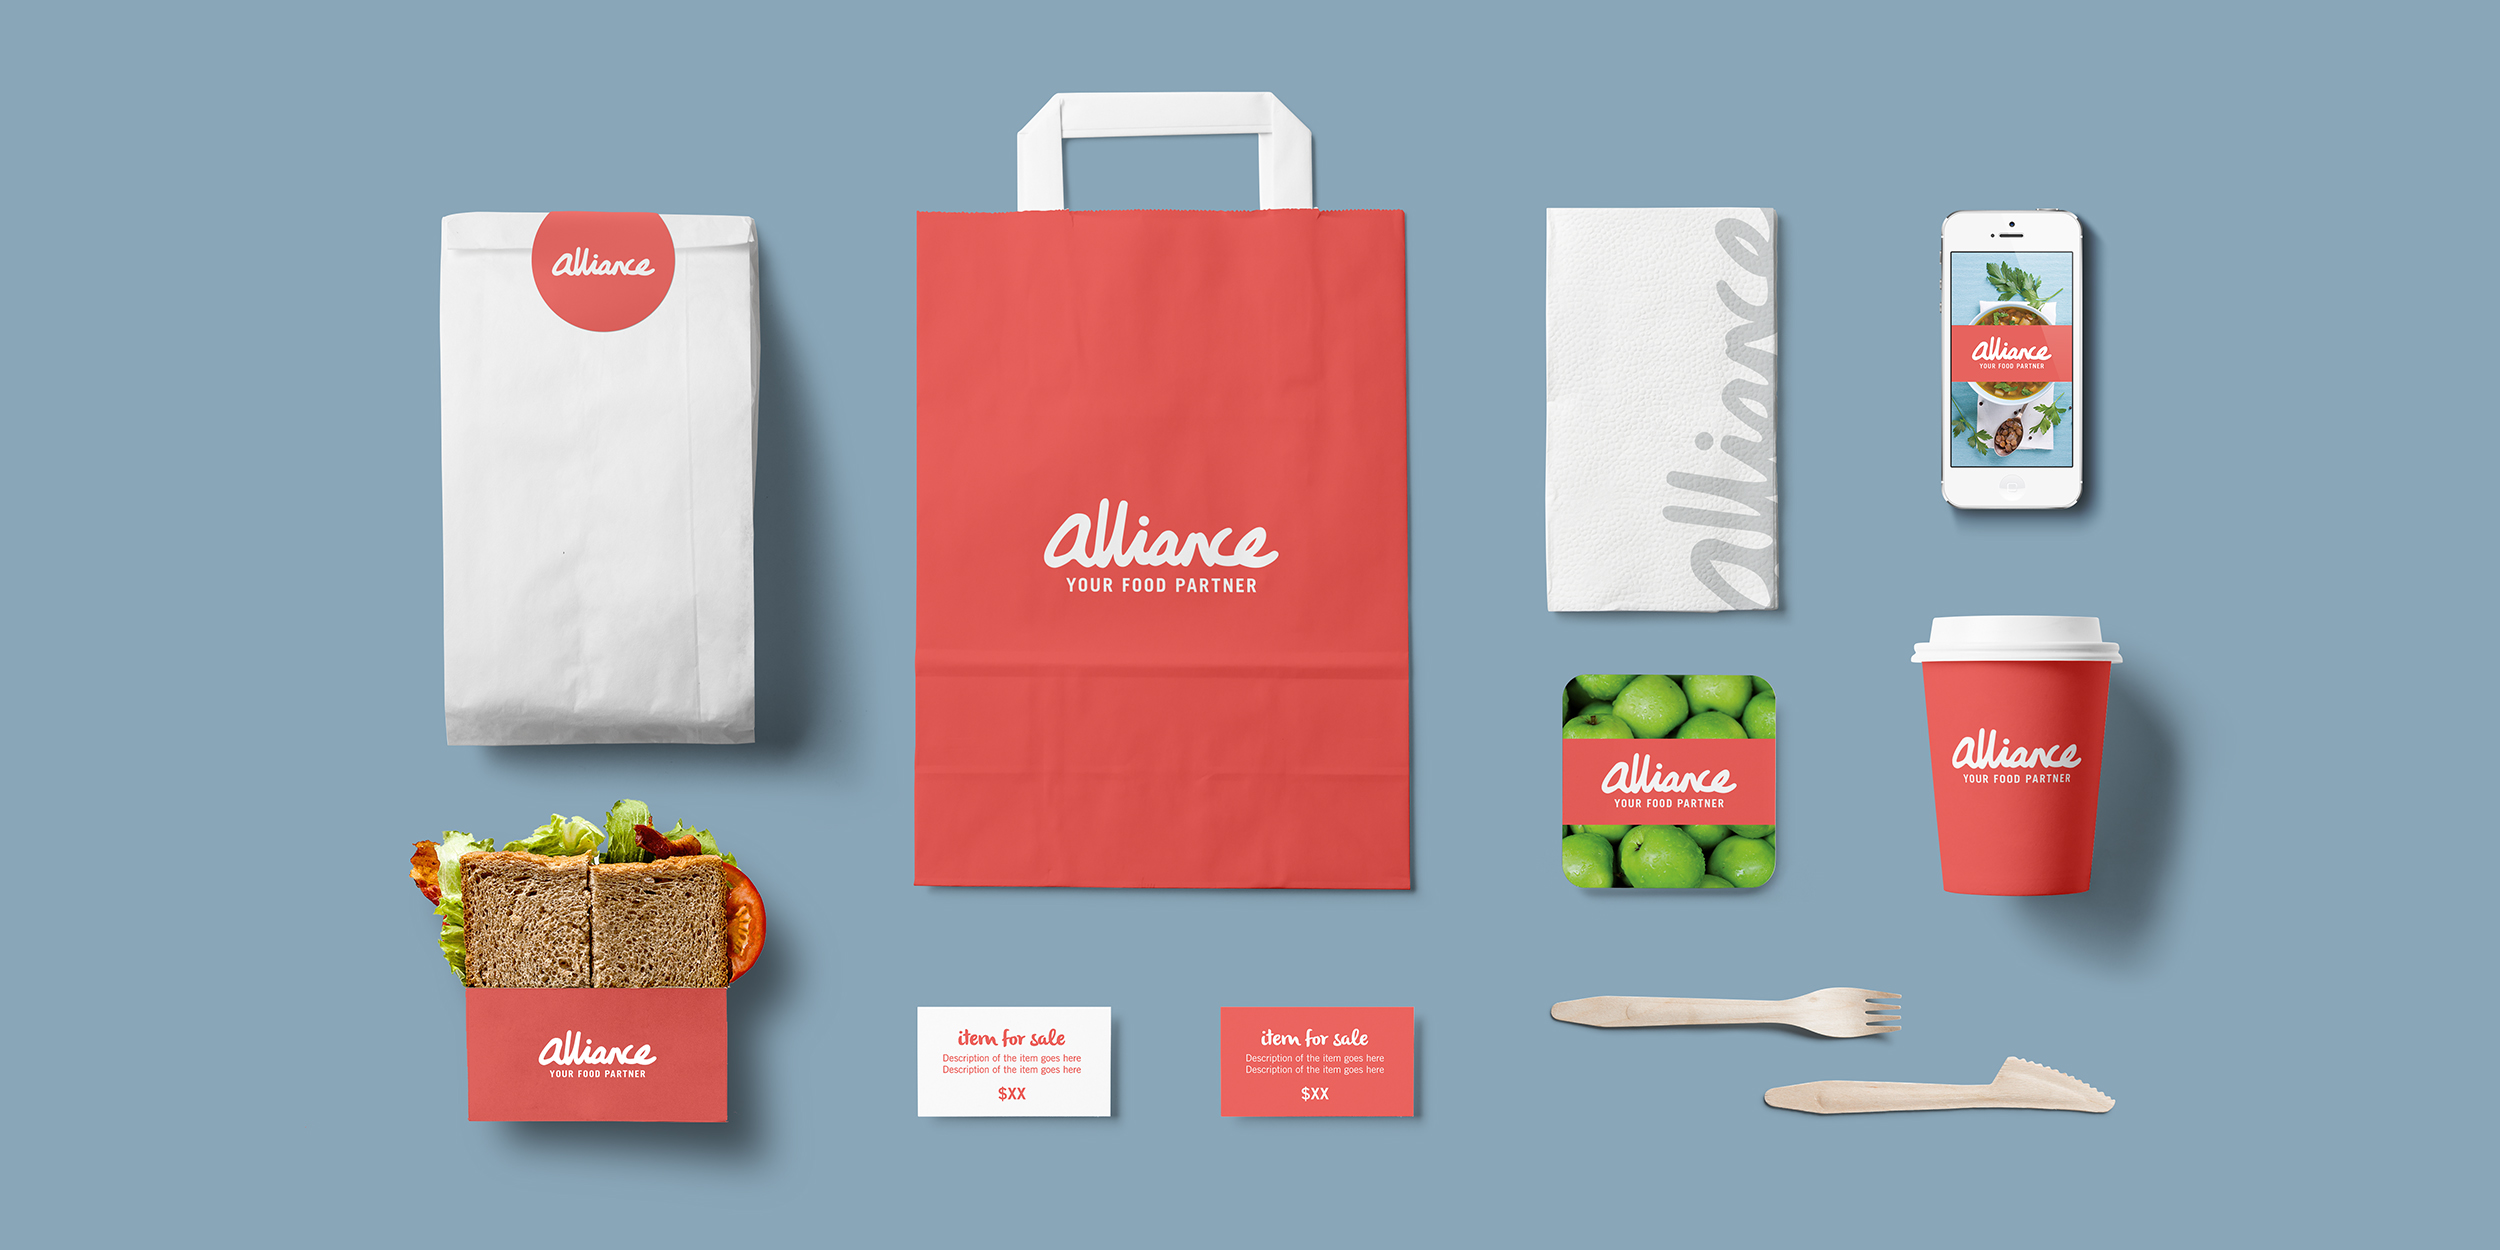 Alliance rebranded packaging items, signs and sticker mock ups